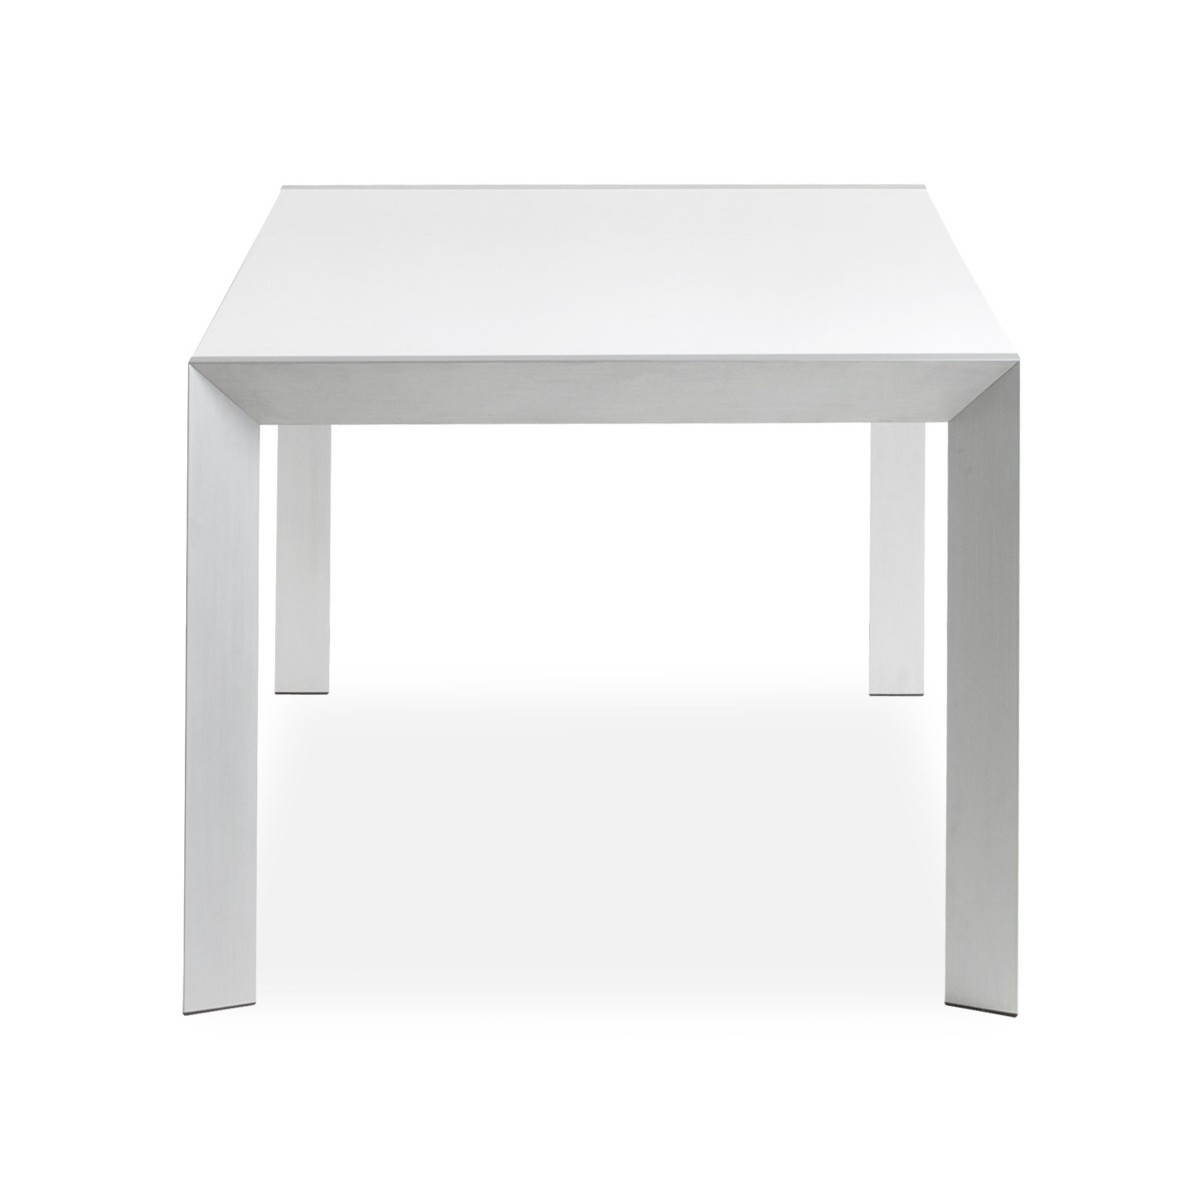 Table basse design bois blanc for Table basse design pas cher blanc